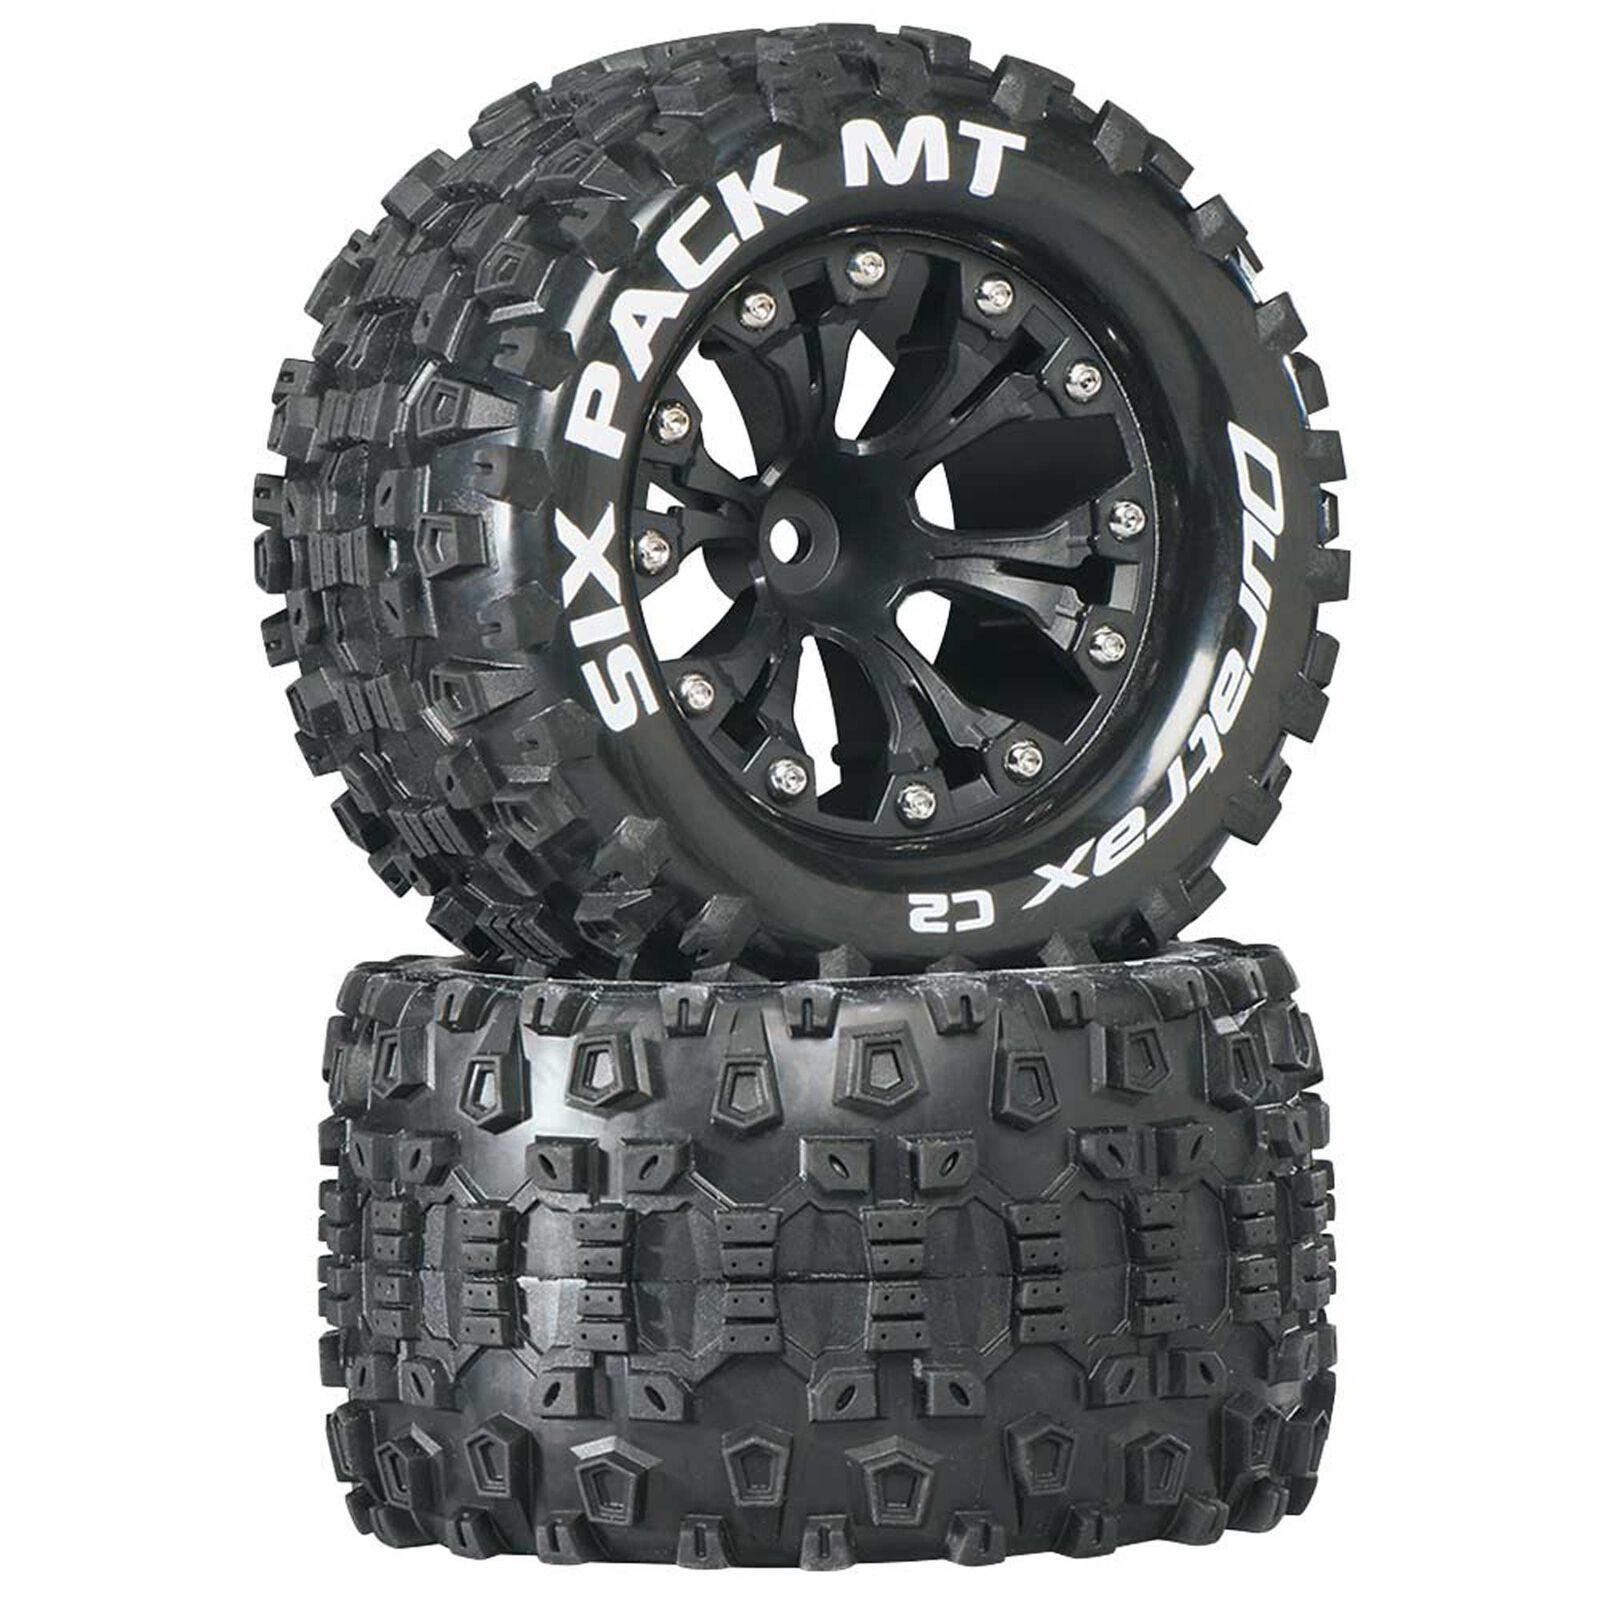 """Six-Pack MT 2.8"""" 2WD Mounted 1/2"""" Offset Tires, Black (2)"""